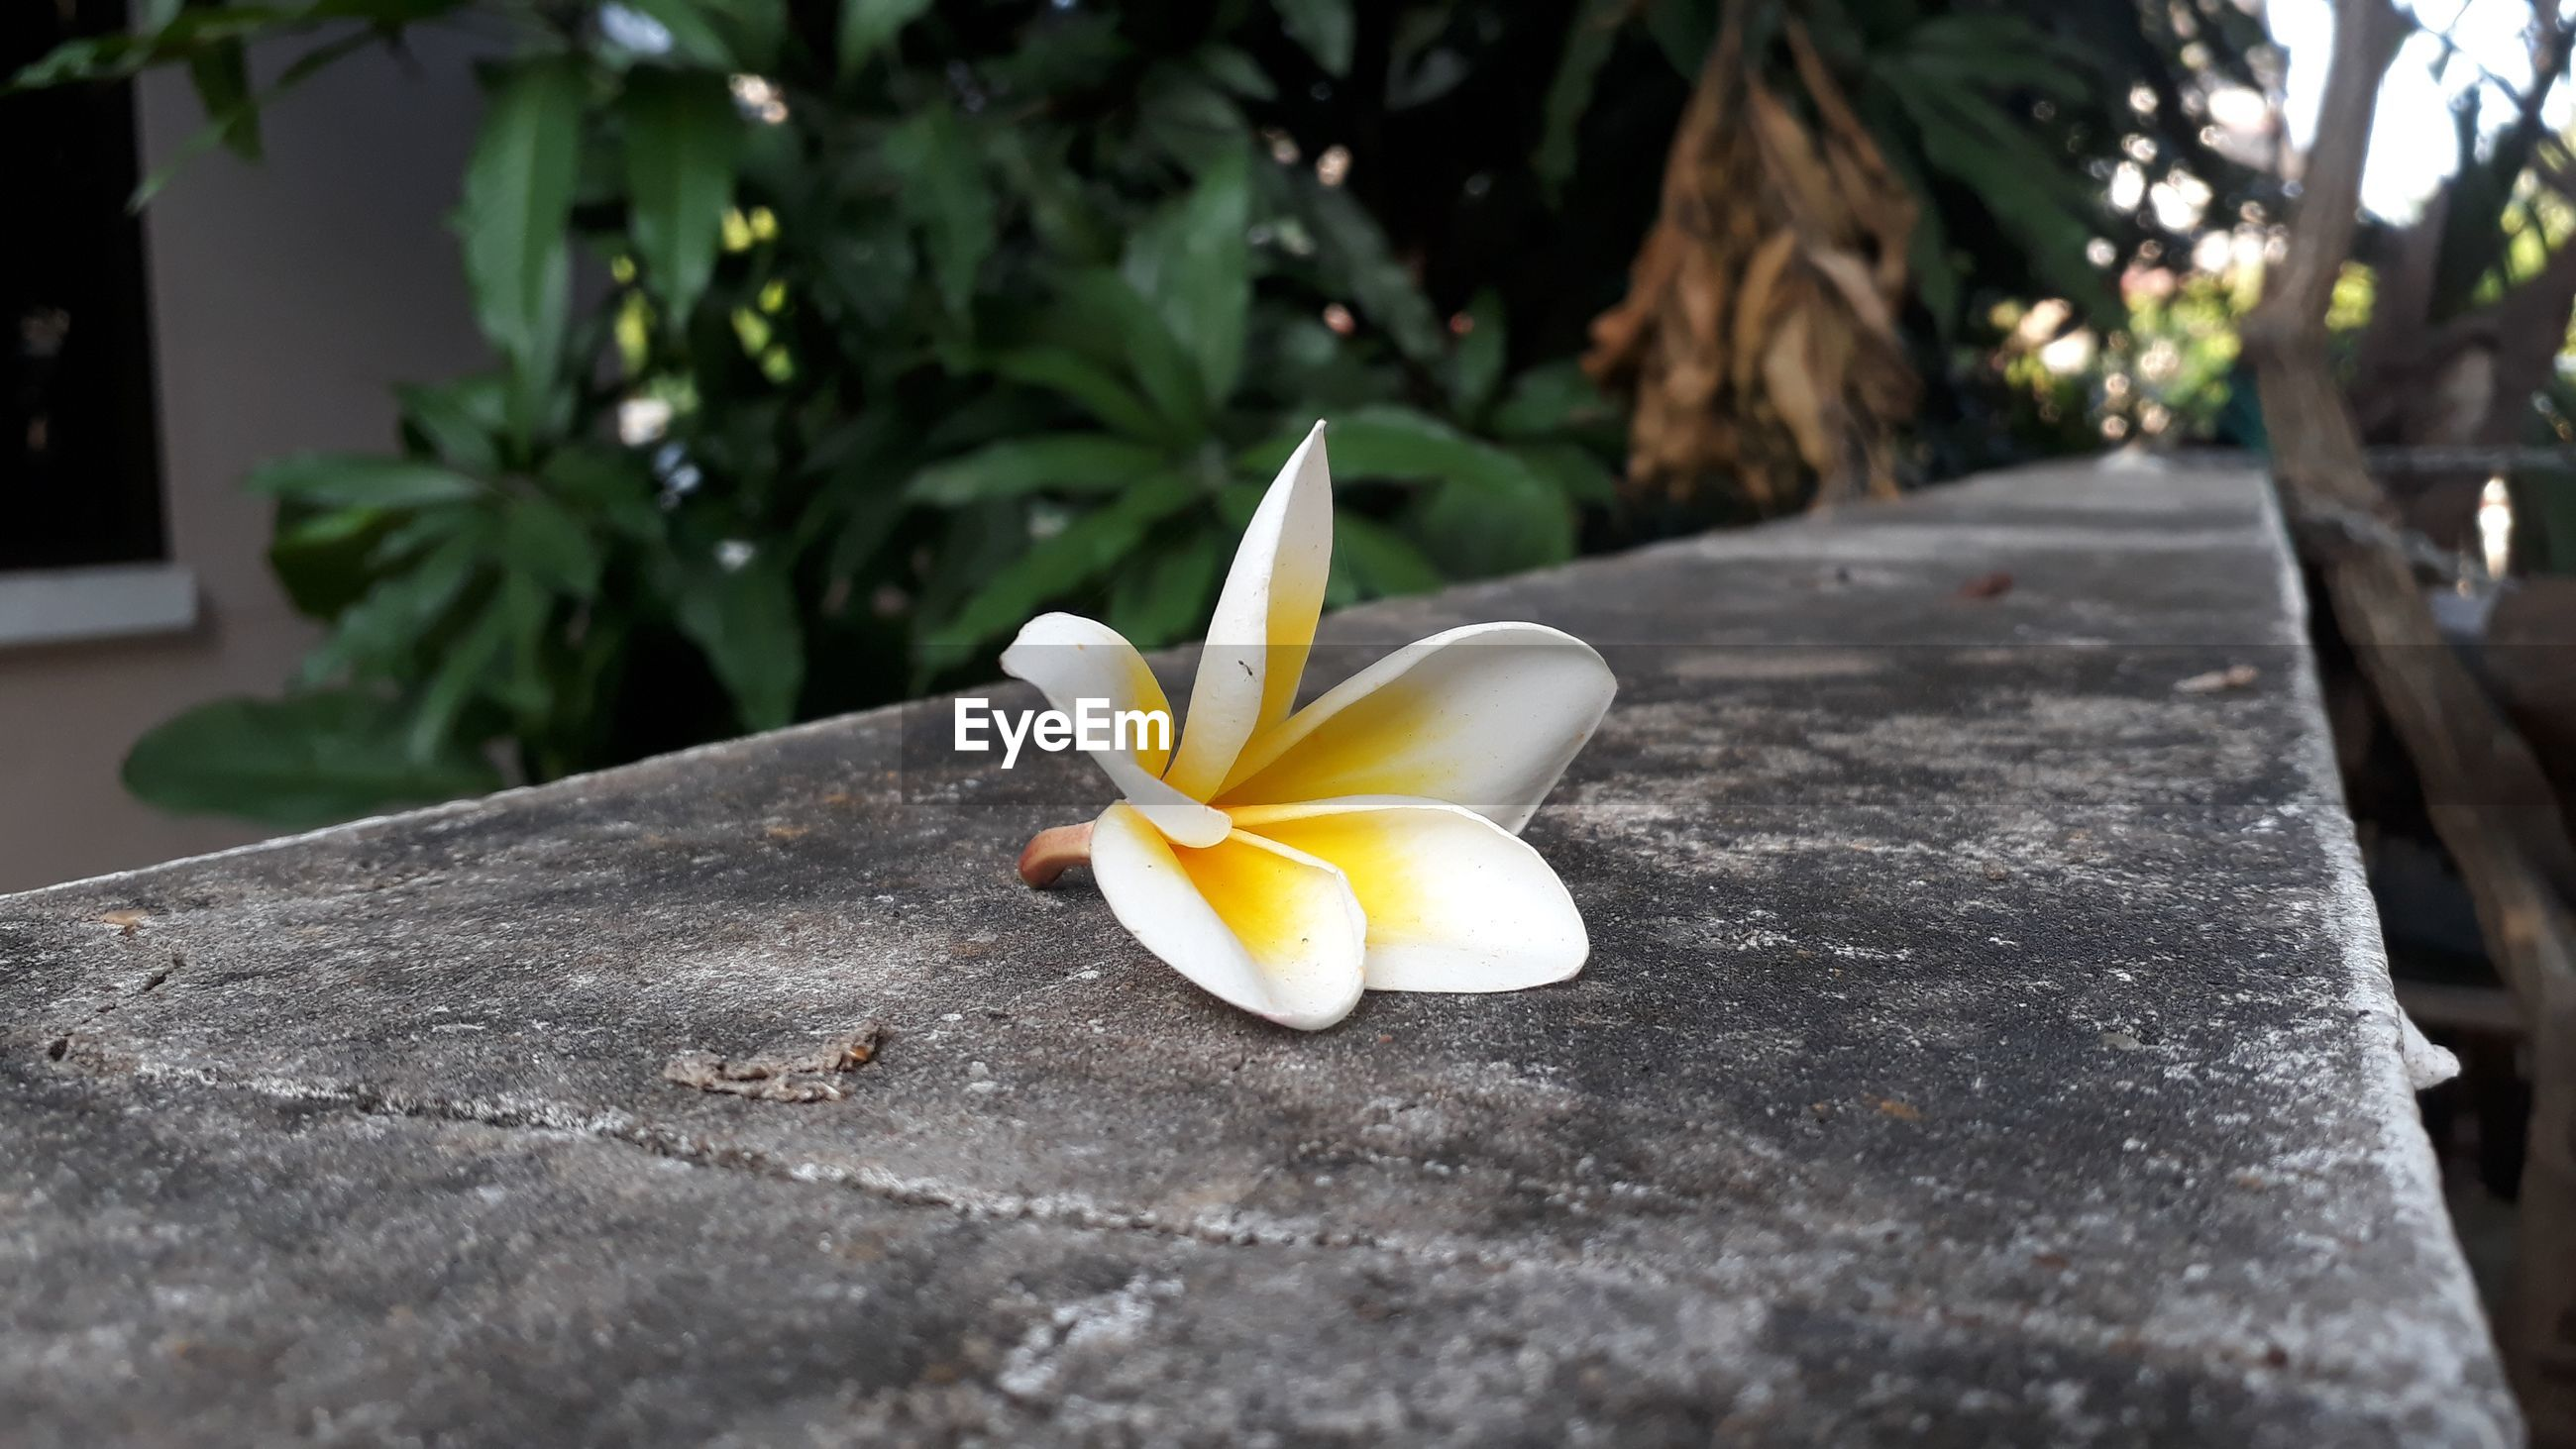 Close-up of frangipani on plant